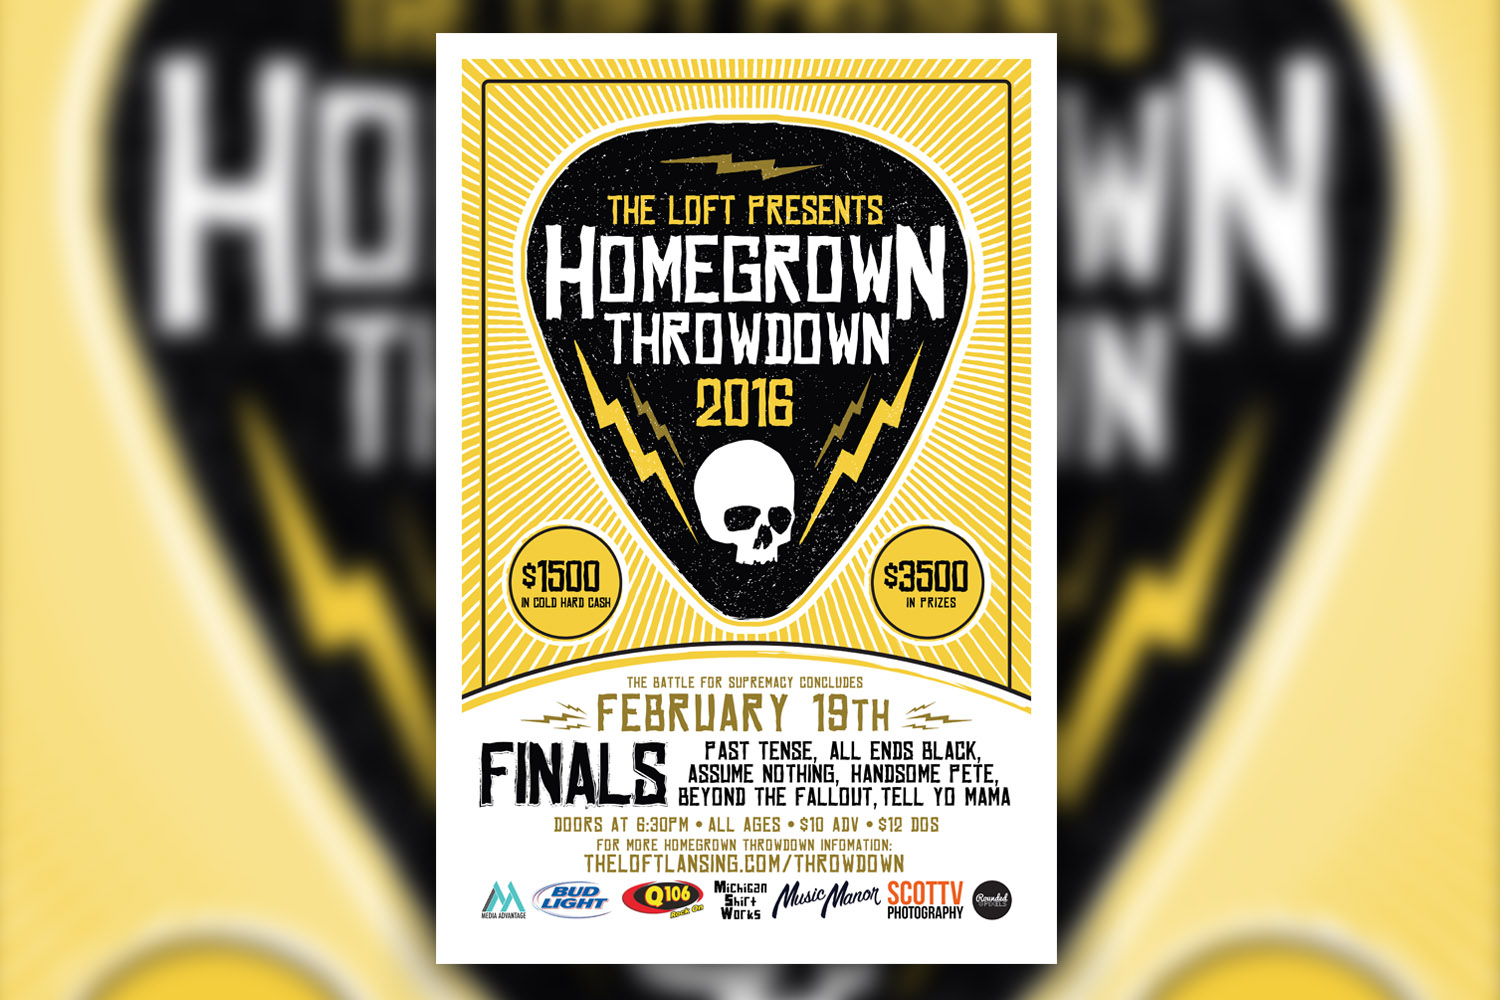 2015 Homegrown Throwdown Finals Poster